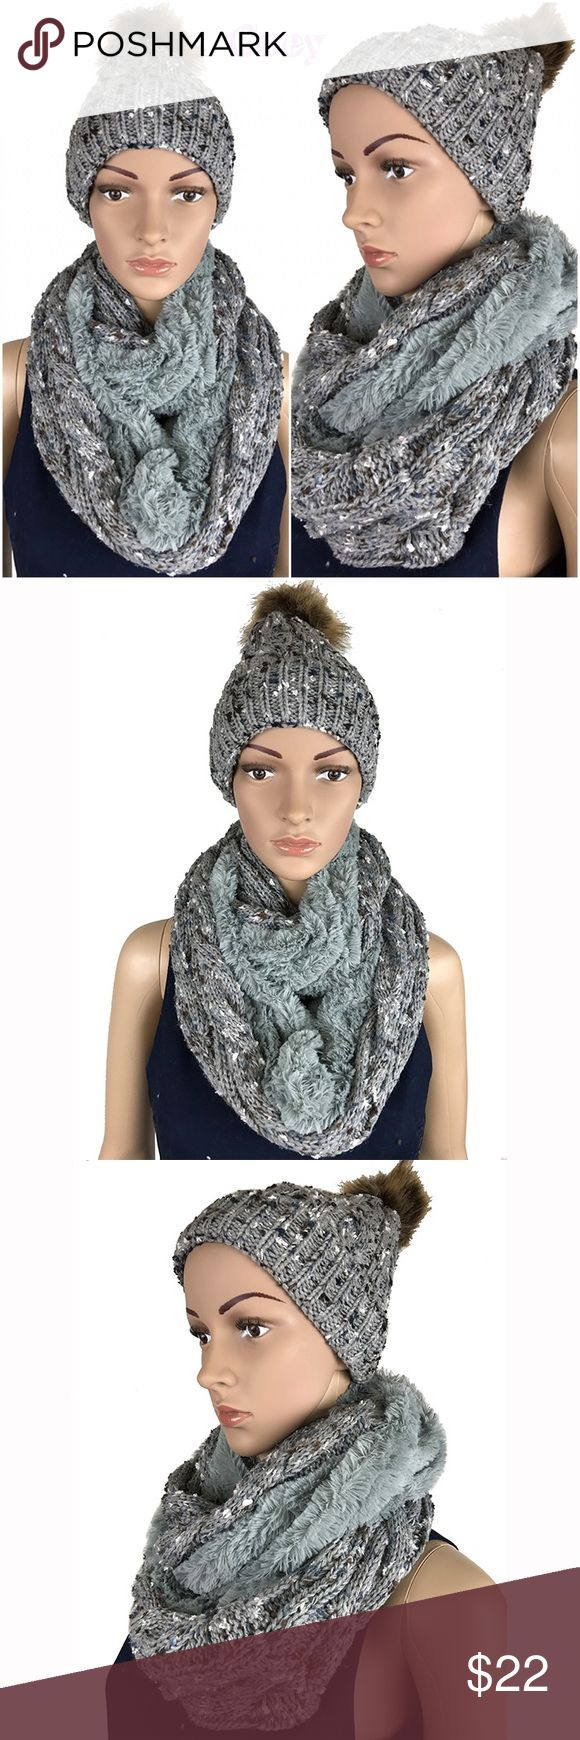 "Knit Infinity Scarf & Beanie Hat Winter Set Grey Material: 100% Acrylic; weight: 14.5 oz Pack Includes: 1 beanie hat and 1 scarf SCARF- Length- 28"" x Width- 10""; HAT- Length- 9"" Width- 8"";  Wrap this infinity loop scarf around your neck twice and the faux fur will keep you warm and comfortable for hours on end. Accessories Scarves & Wraps"